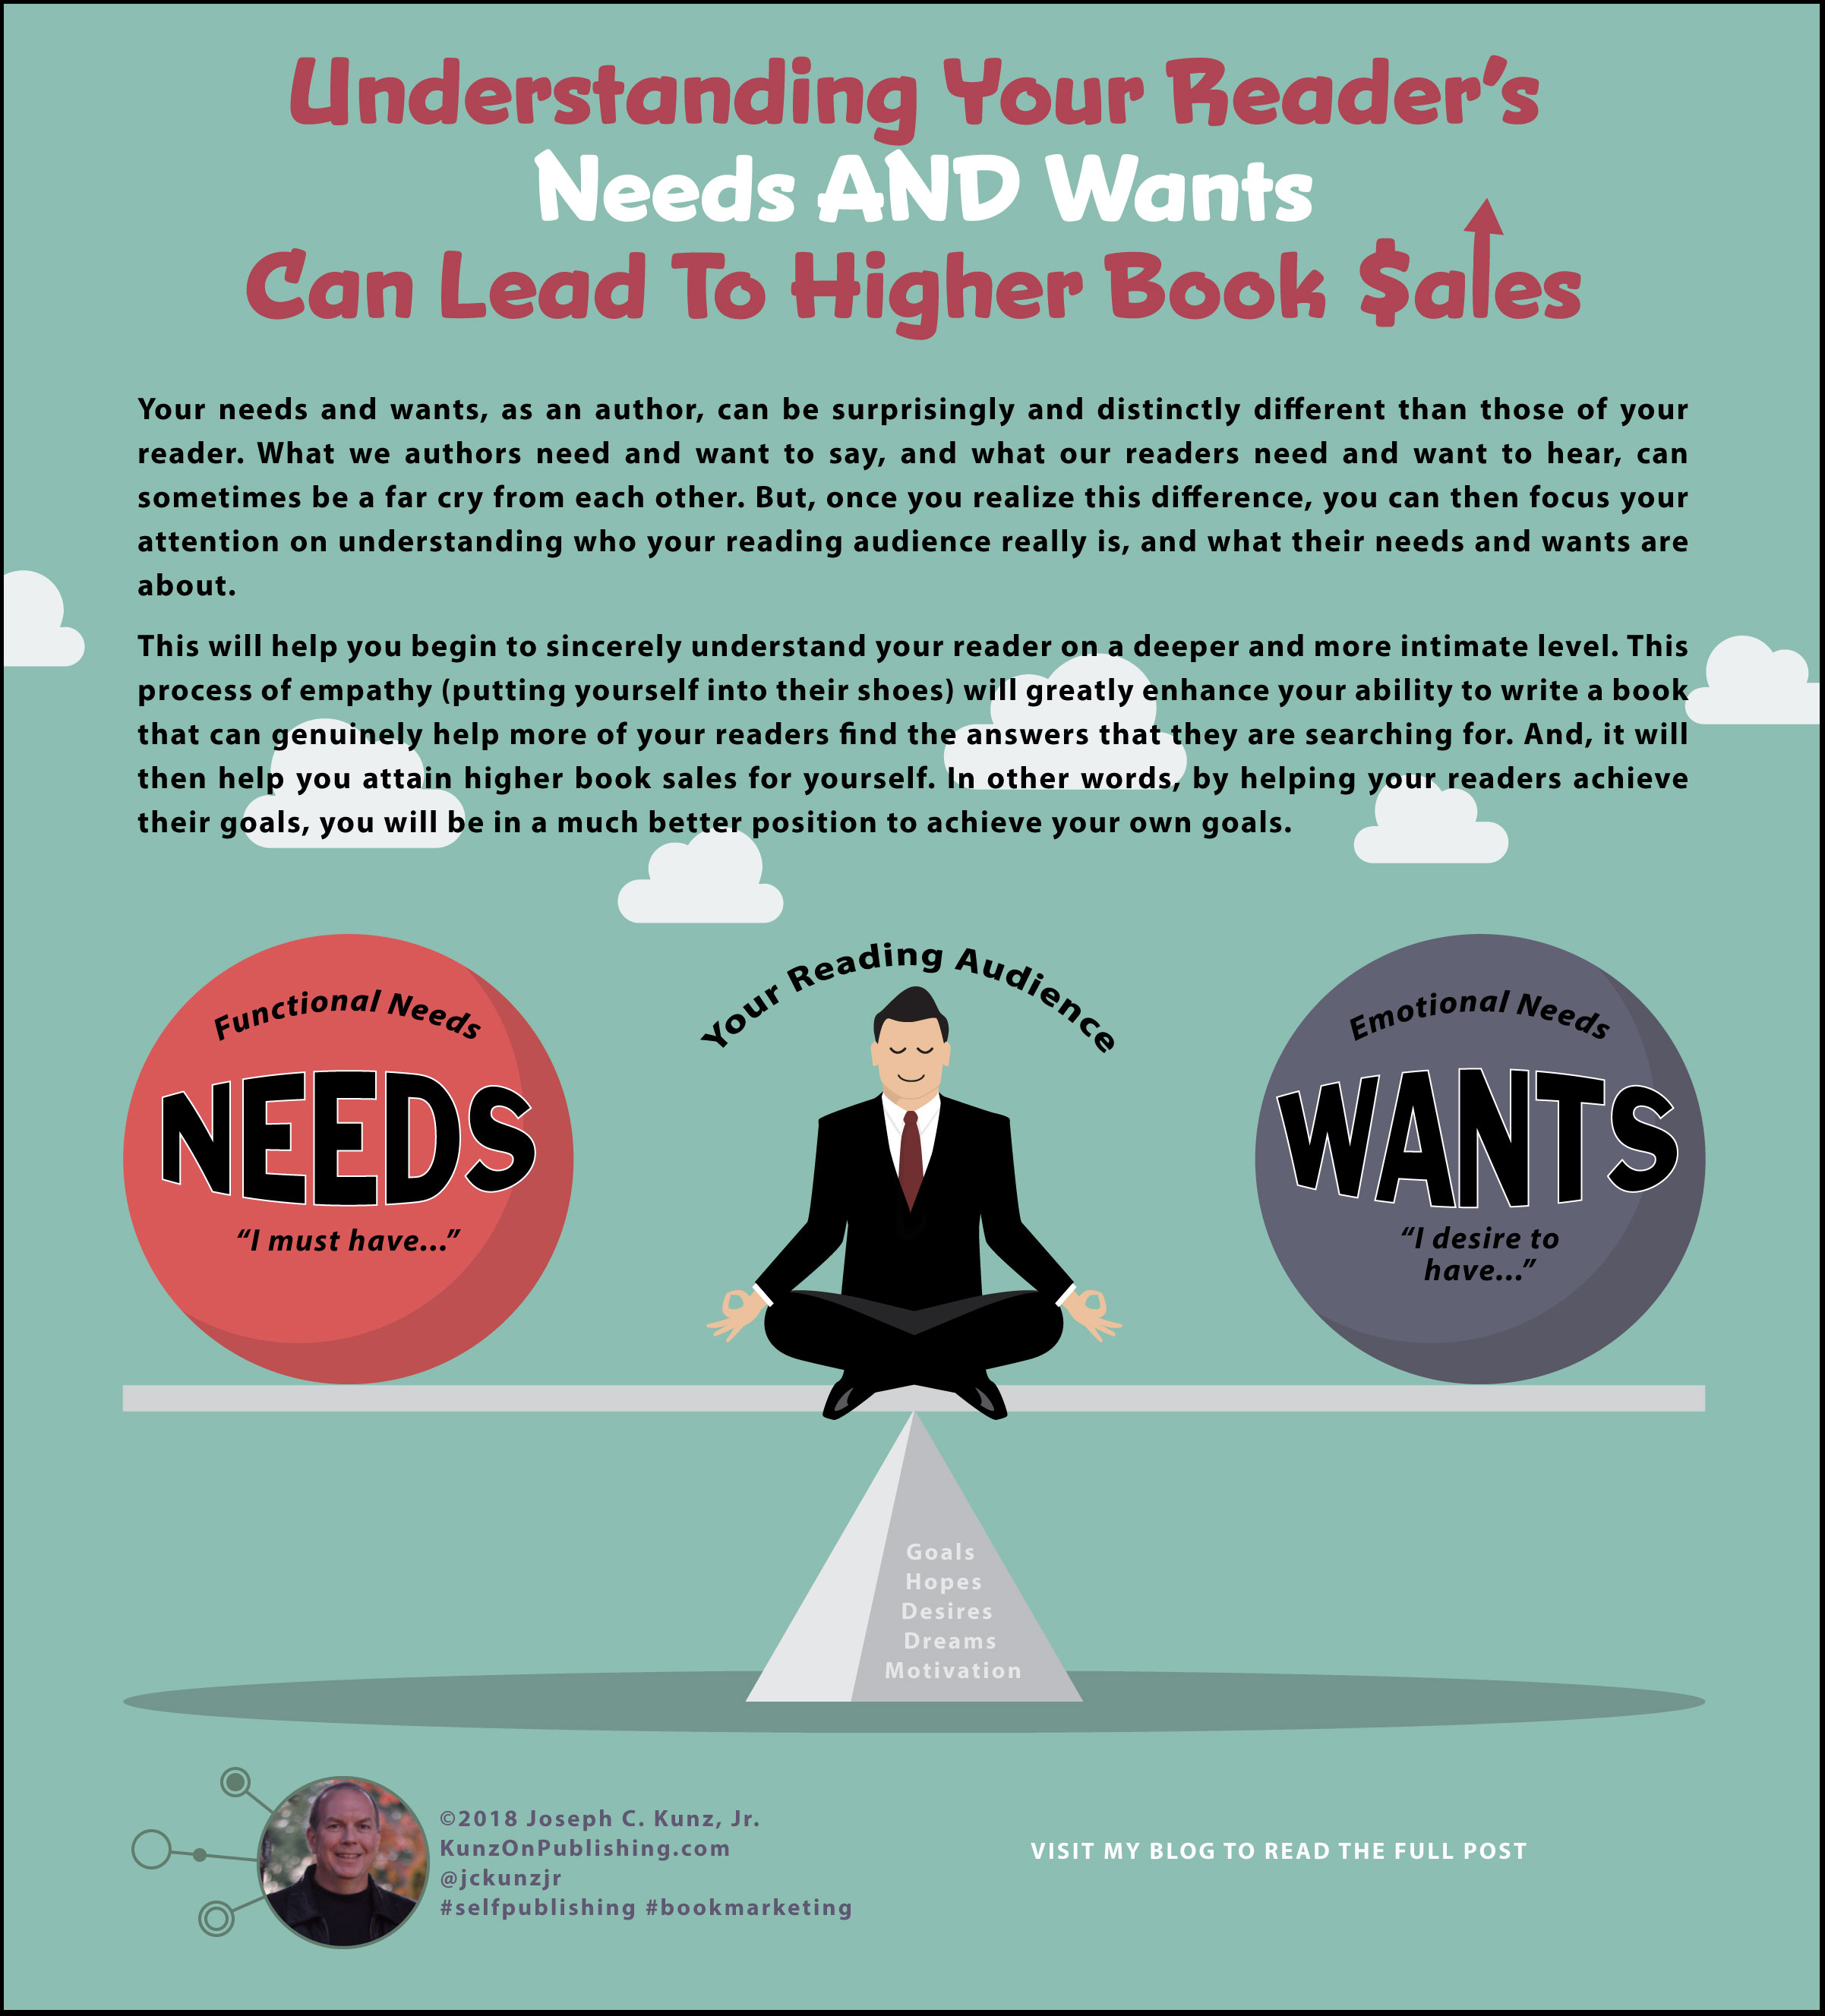 Understanding Your Reader's Needs AND Wants Can Lead To Higher Book Sales (Infographic)